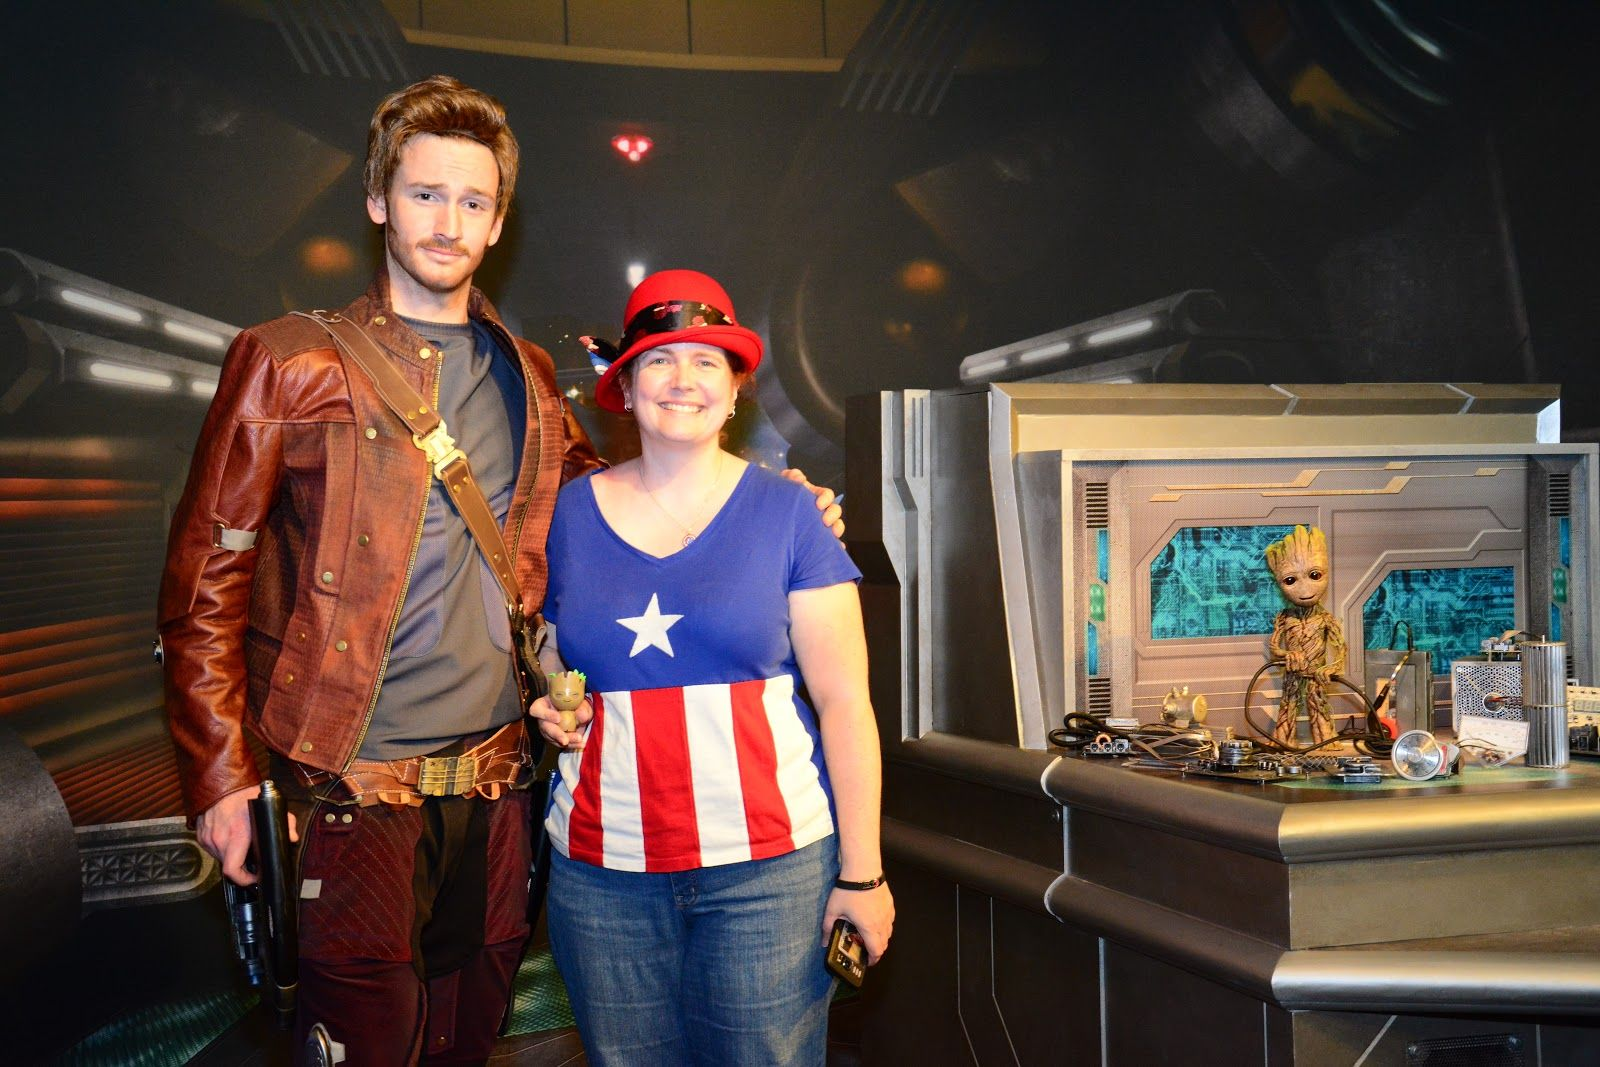 Star lord and baby groot meet and greet baby groot star lord and did you know that you can meet star lord and baby groot at disneys hollywood kristyandbryce Gallery